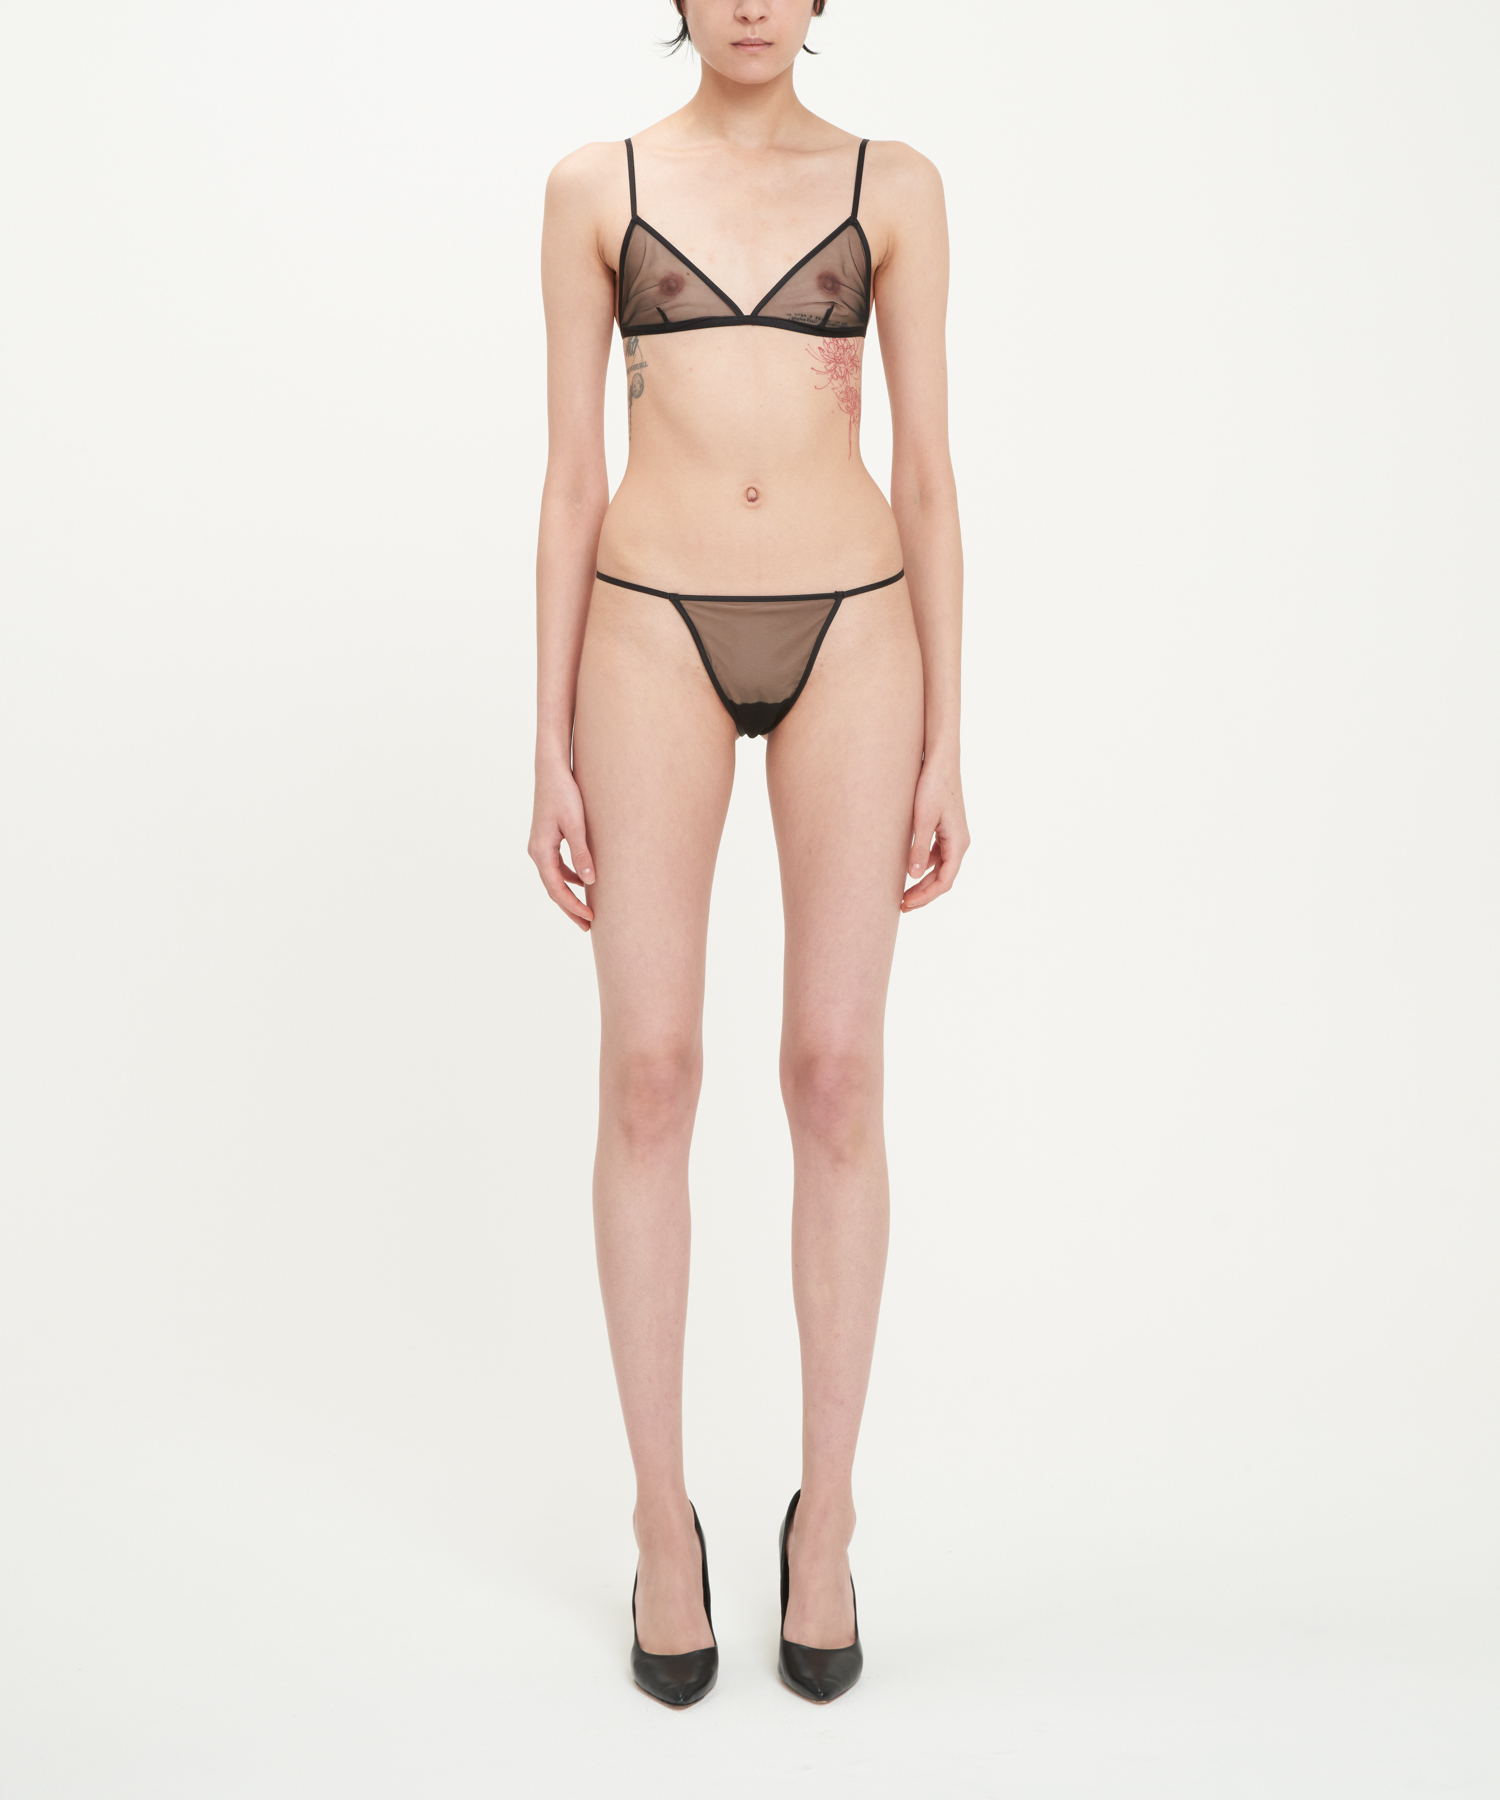 Black Sheer Stretch Tulle Bra And Thong